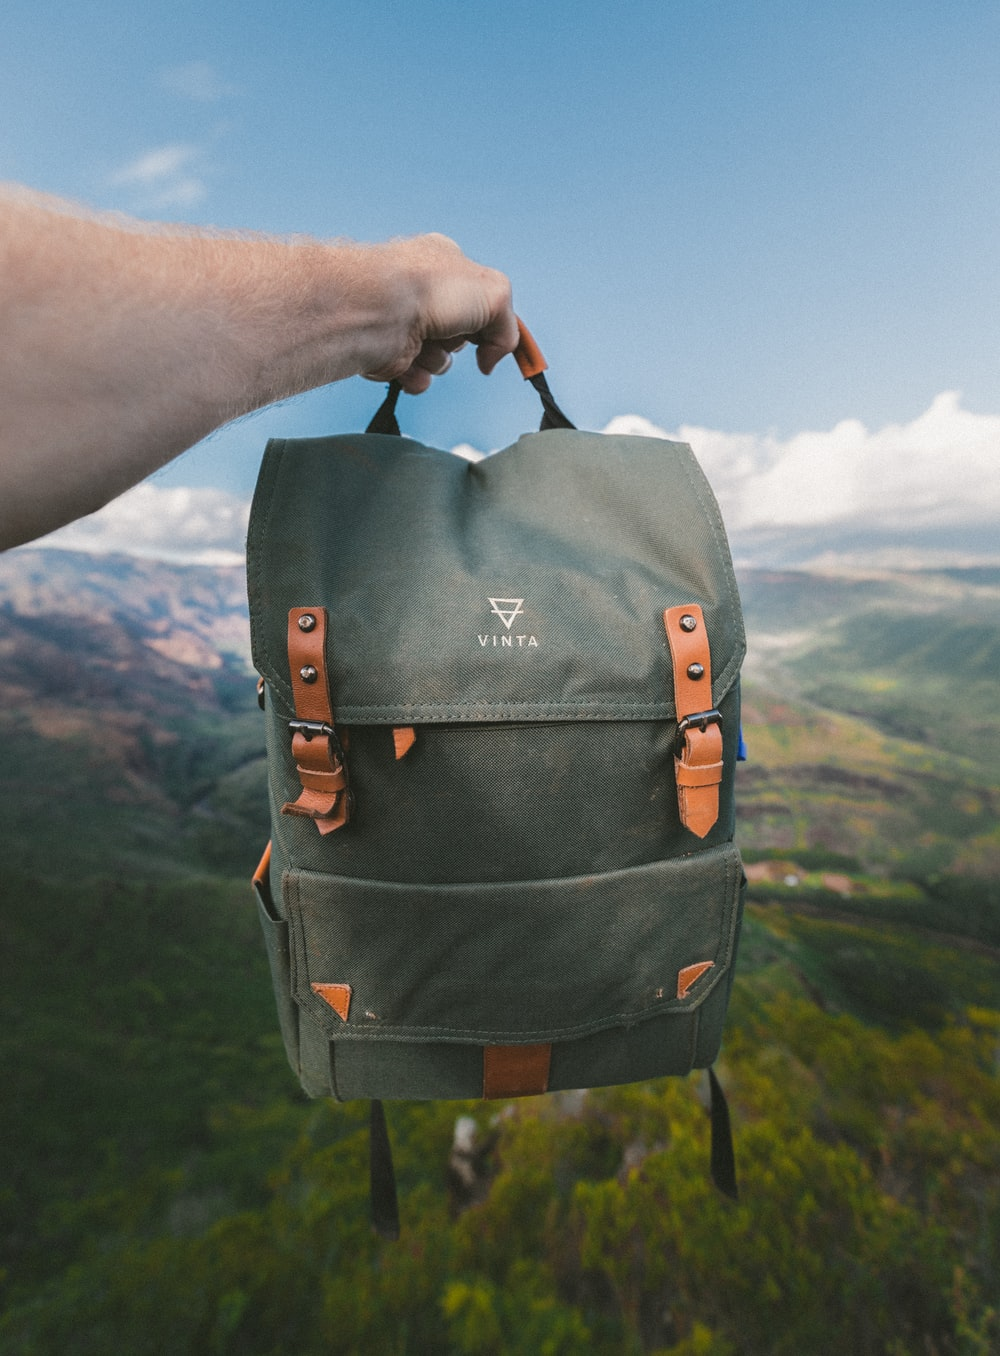 person holding black and brown Vinta backpack